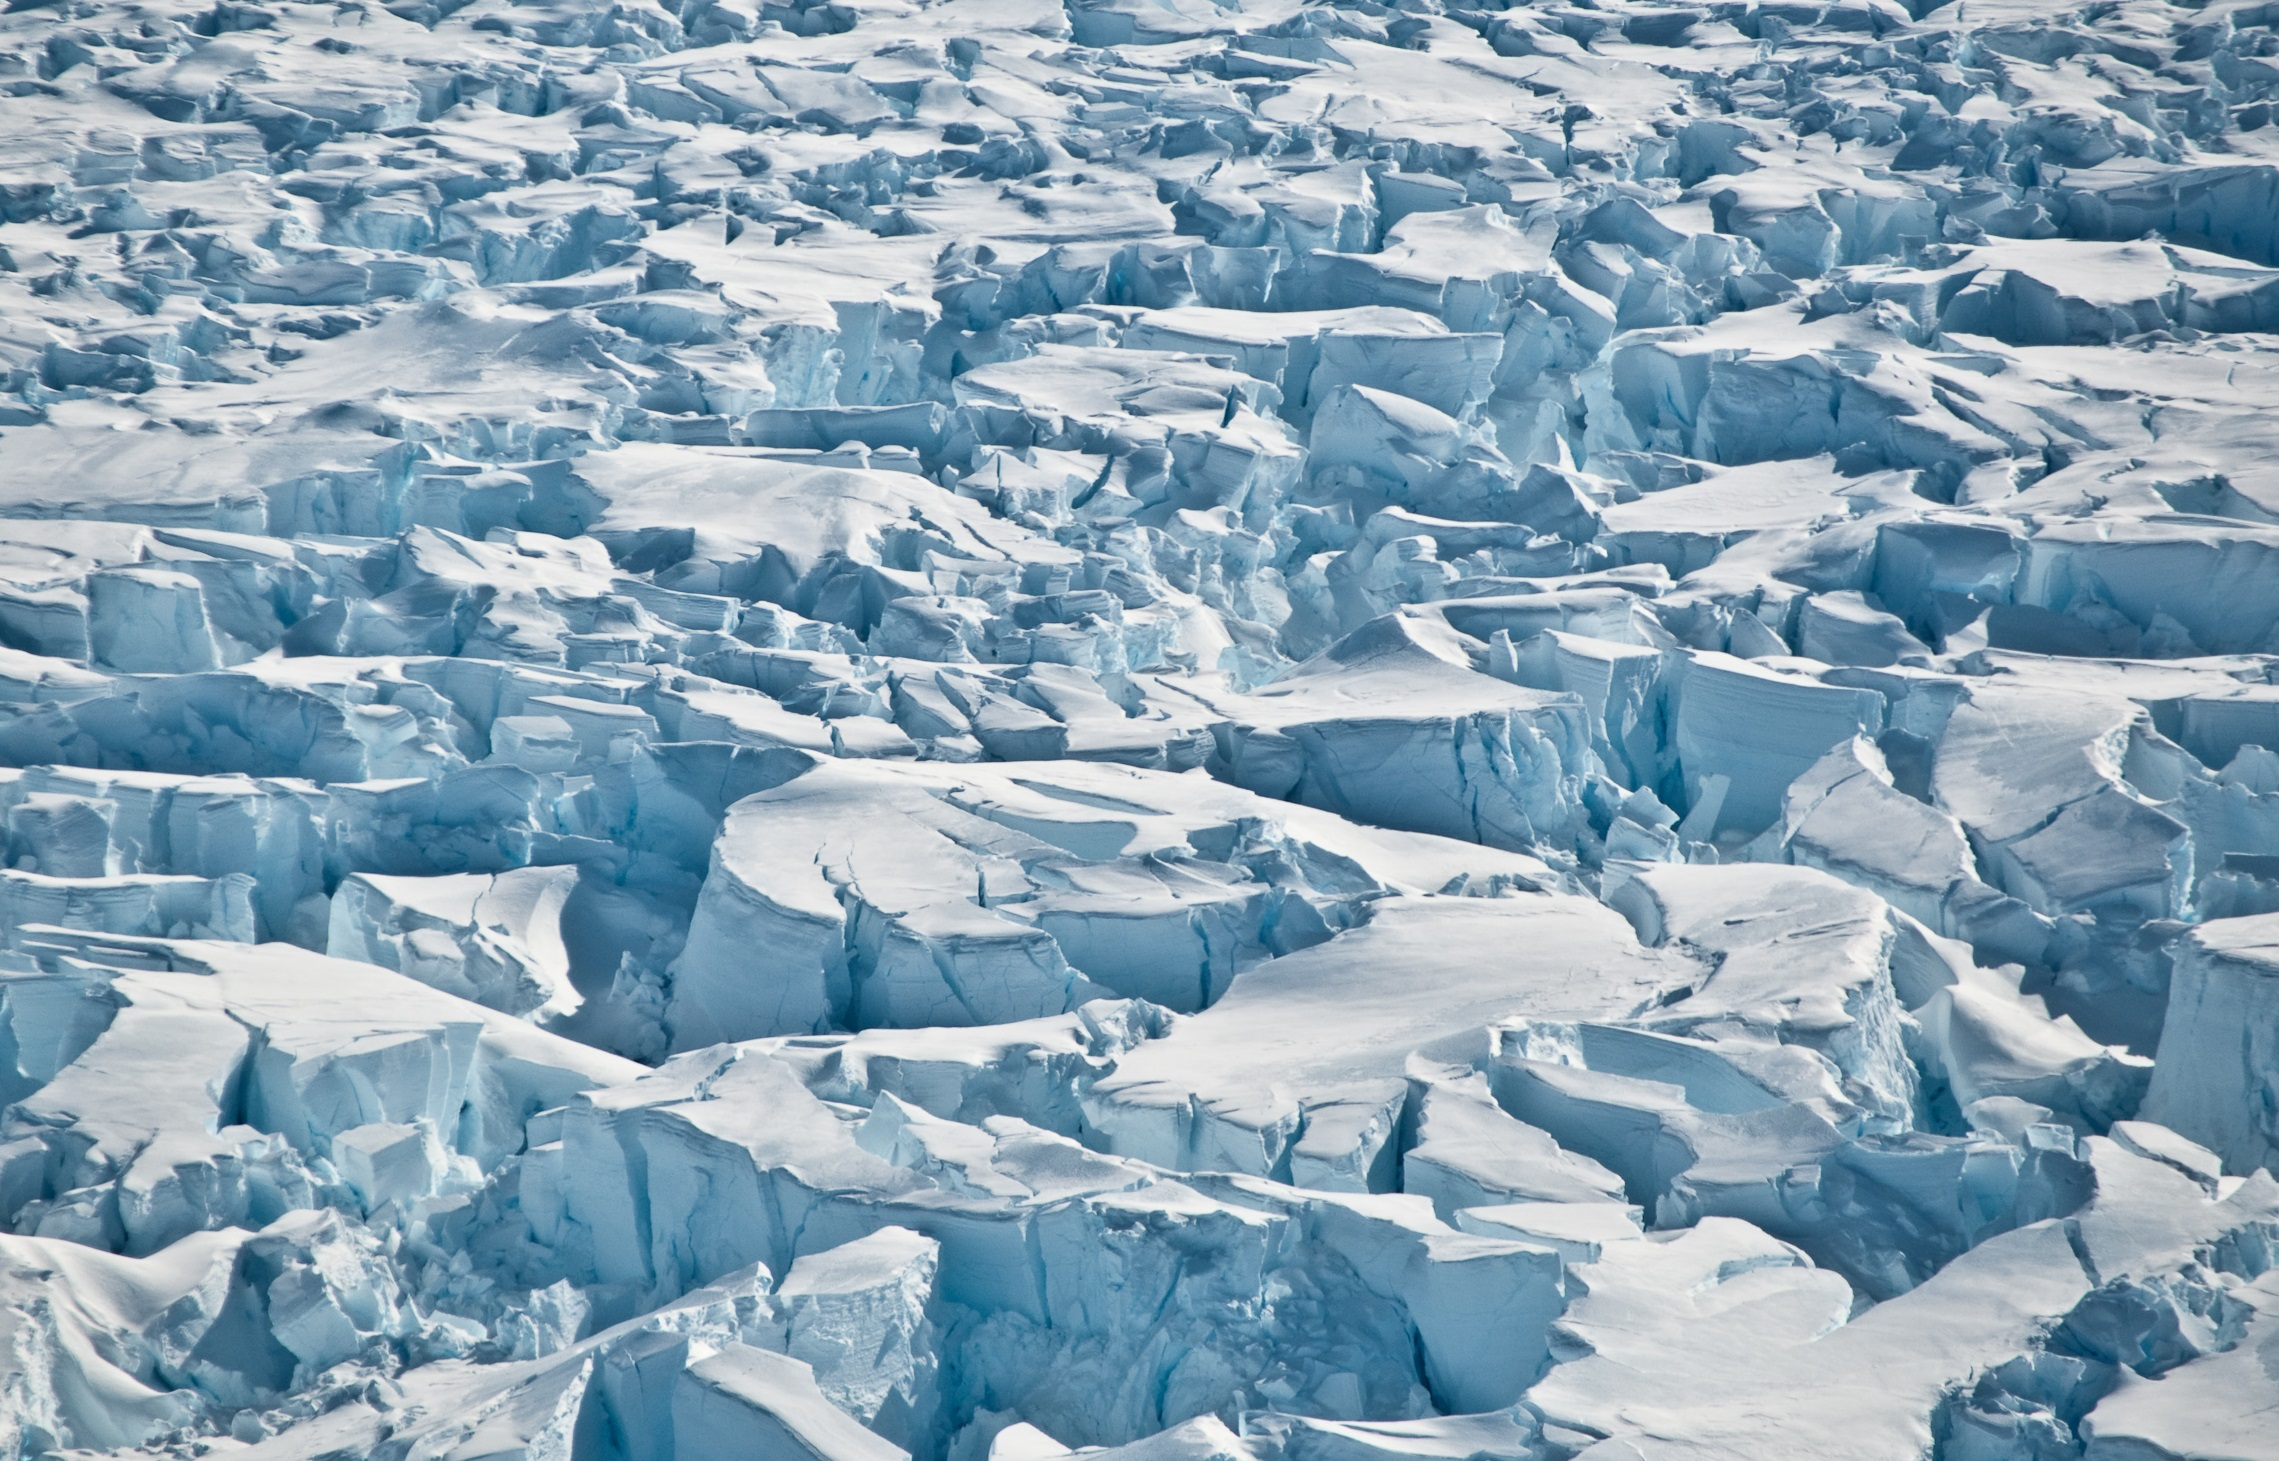 Crevasses near the grounding line of Pine Island Glacier, Antarctica. Credit: University of Washington/I. Joughin